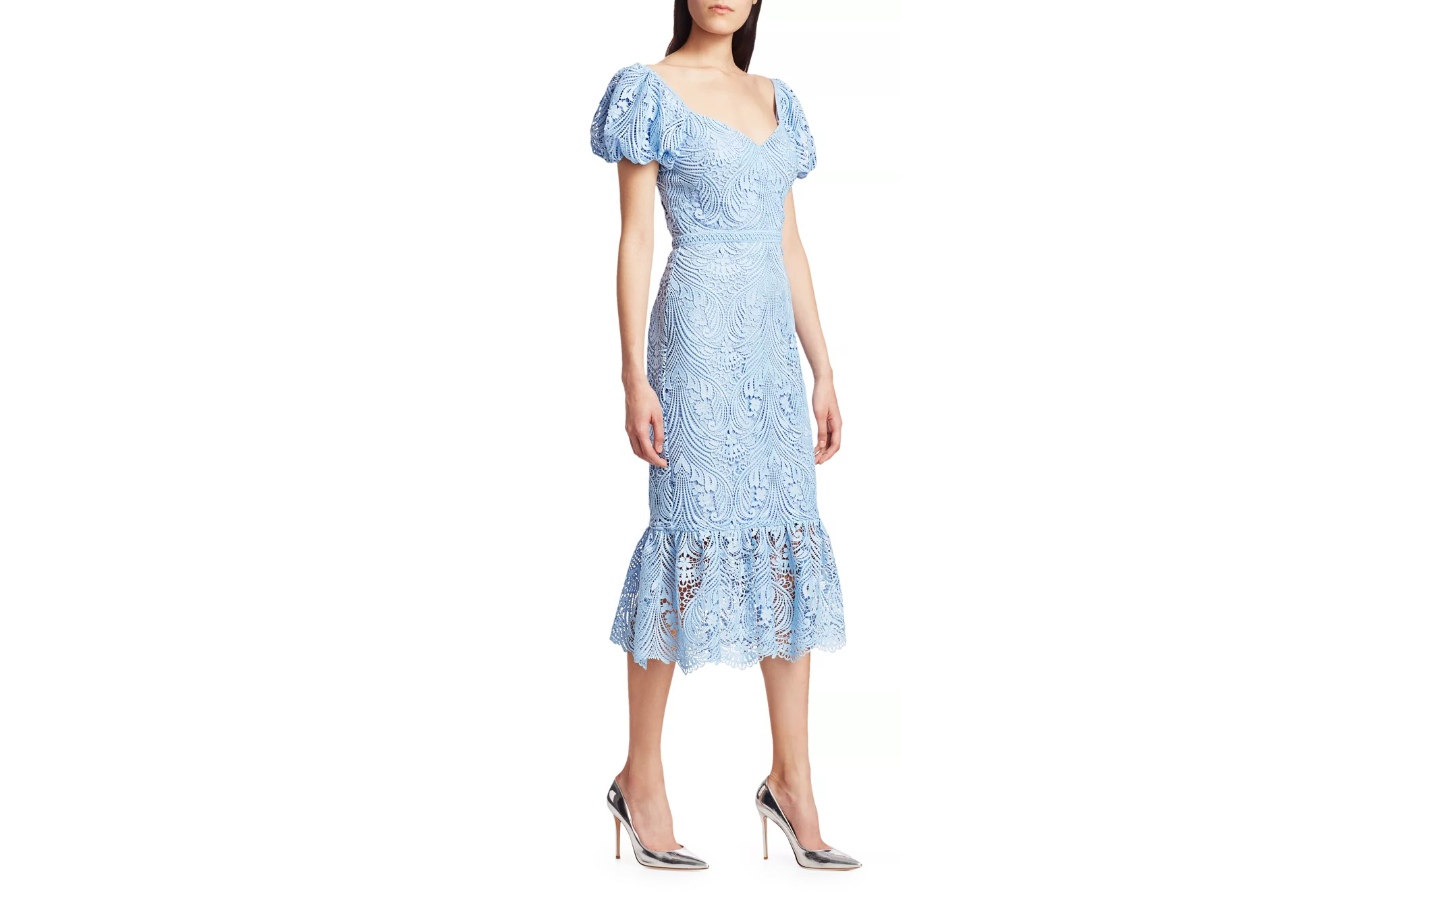 ML Monique Lhuillier Lace Puff-Sleeved Midi Dress